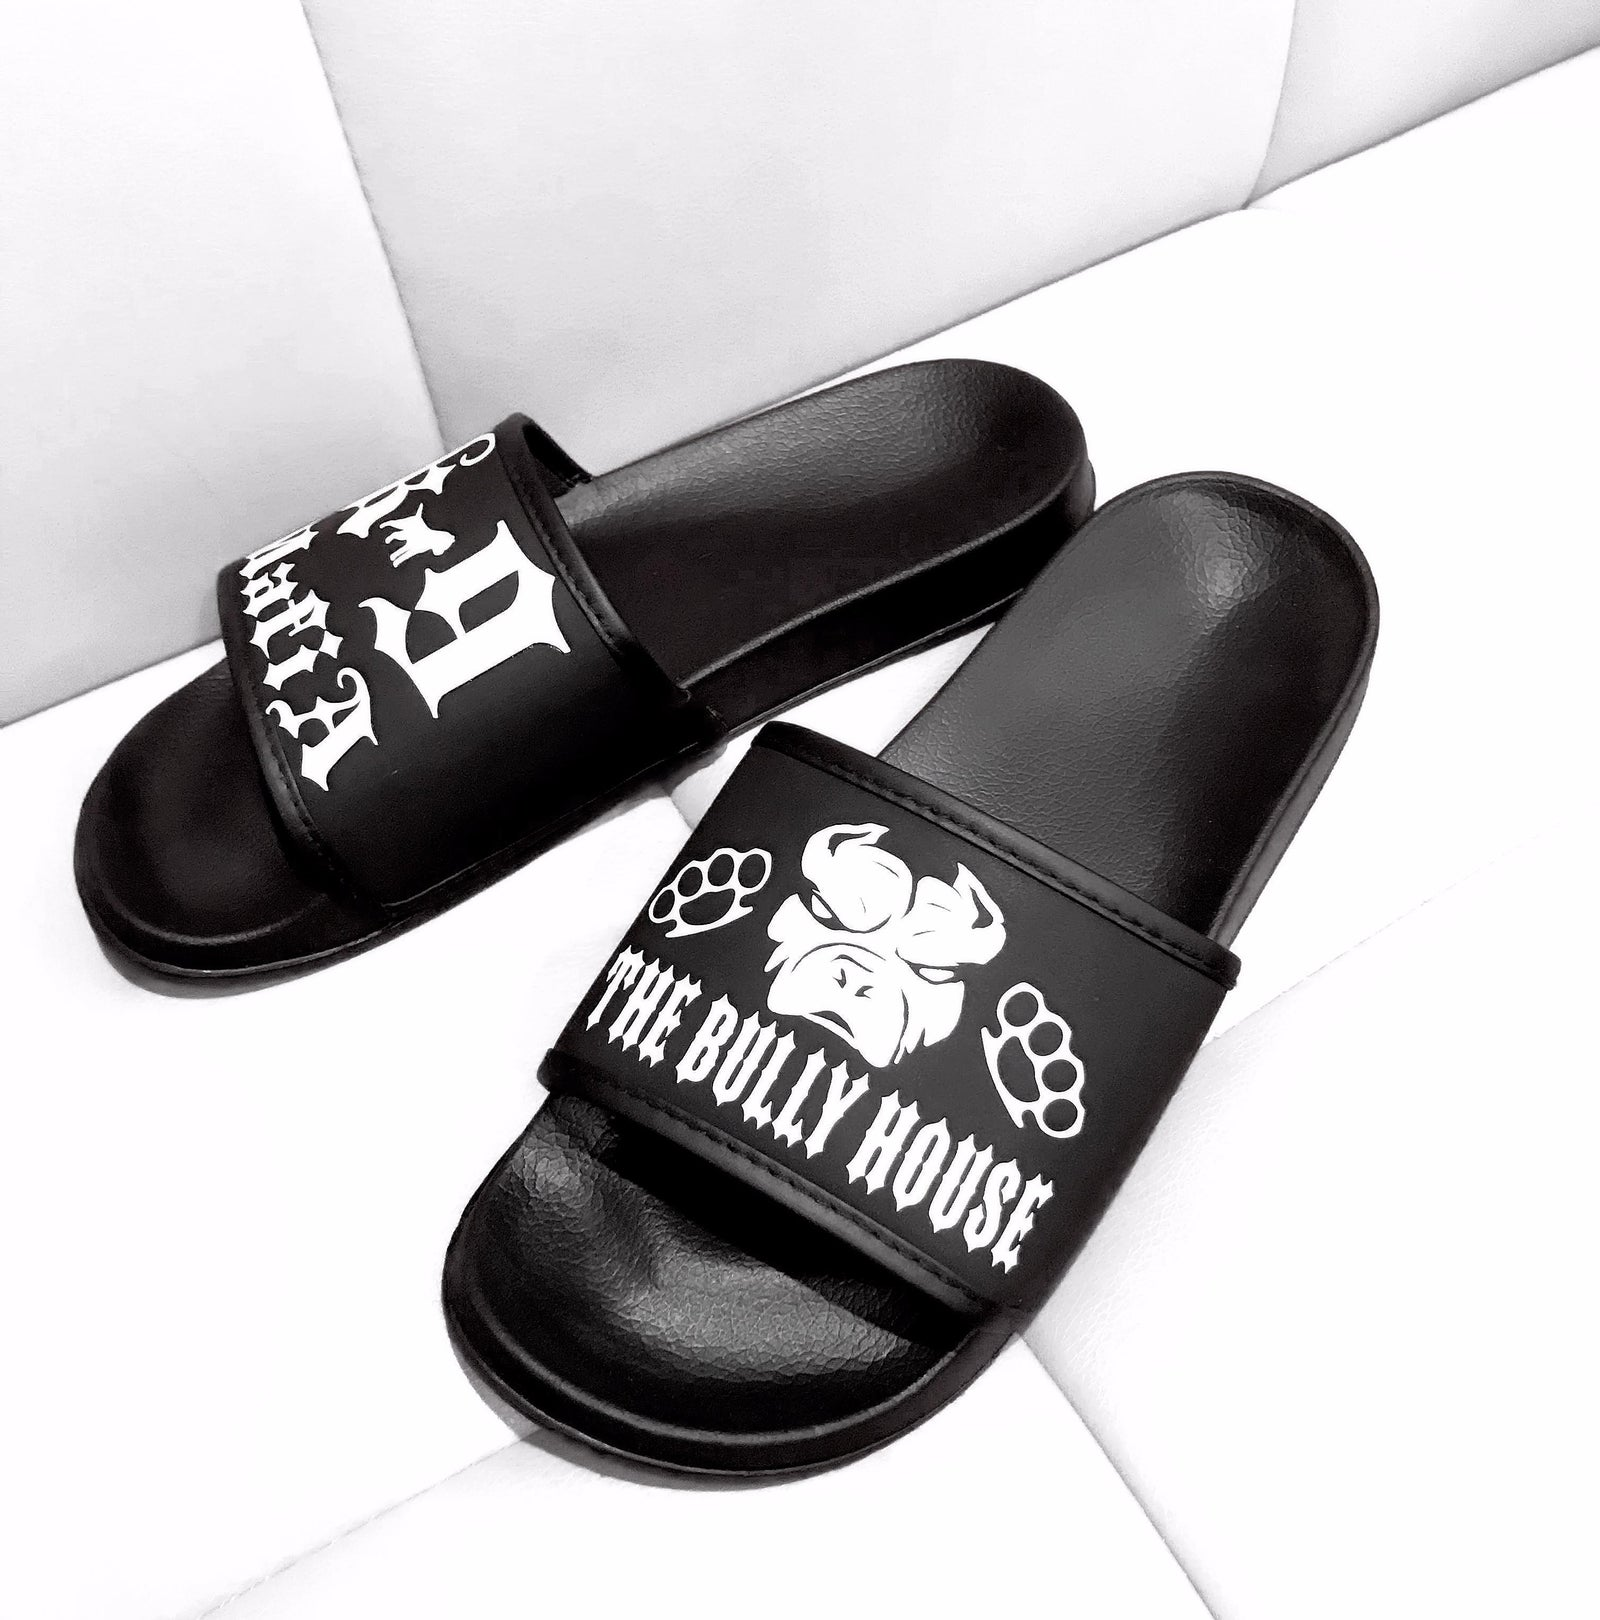 THE BULLY HOUSE - K9 MAFIA - Hardcore SLIDES (footwear)